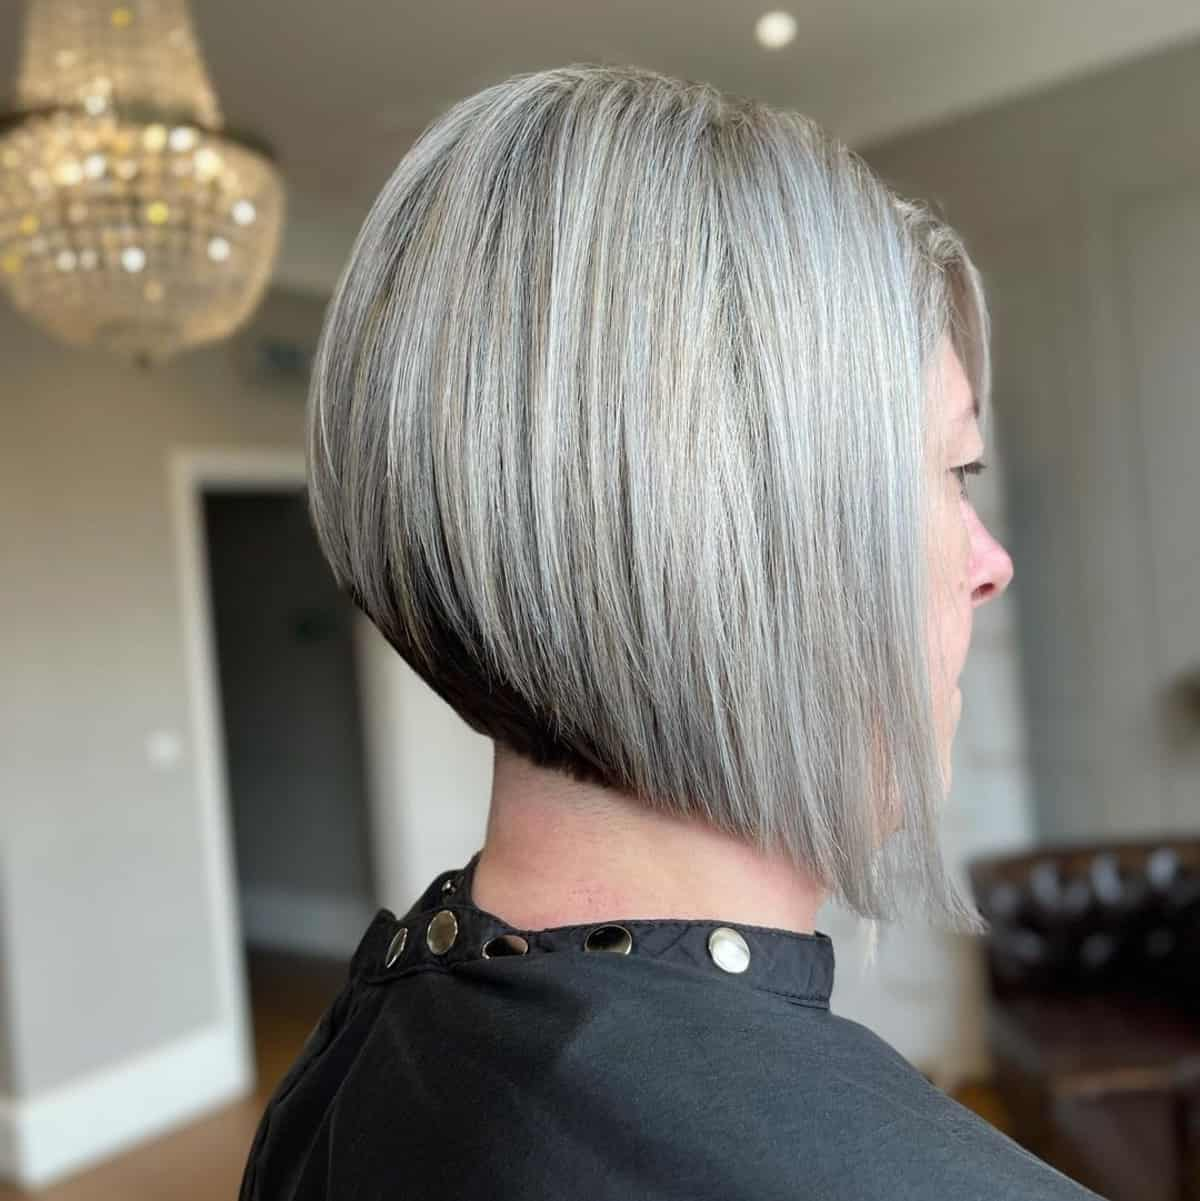 24 Hairstyles For Women Over 50 Fresh Amp Elegant Hairstyles